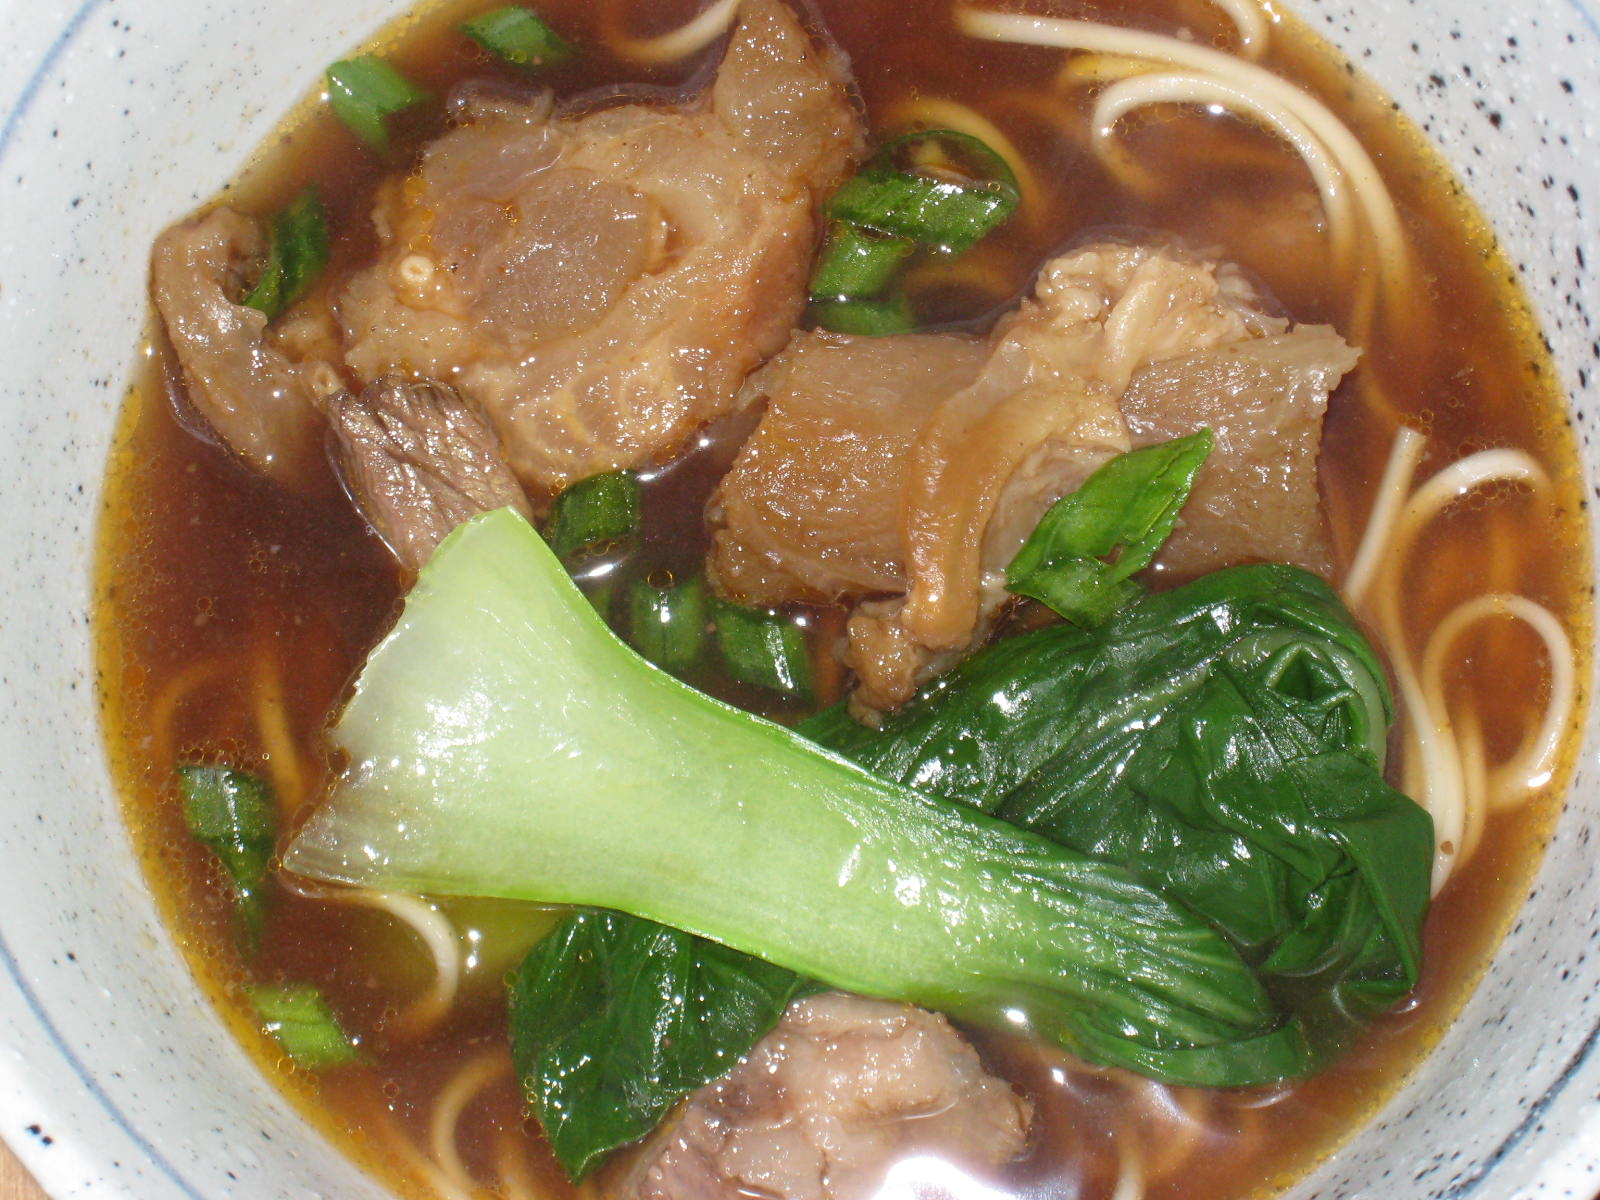 Taiwanese beef noodle soup (紅燒牛肉麵)